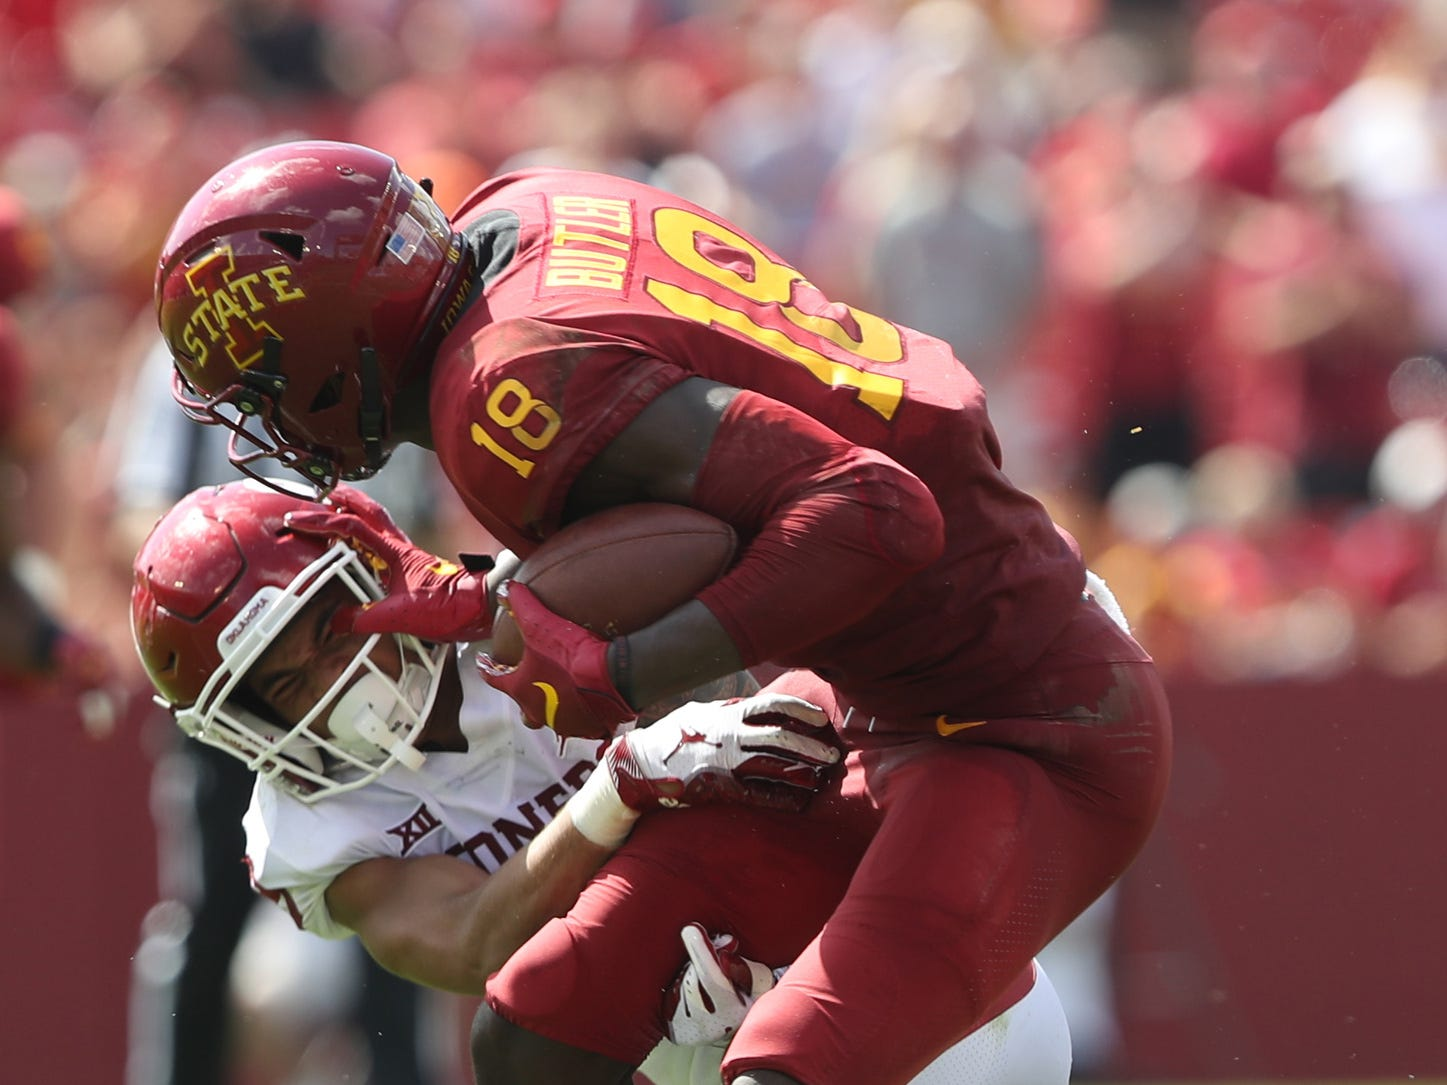 Iowa State Cyclones wide receiver Hakeem Butler (18) catches a touchdown pass against the Oklahoma Sooners at Jack Trice Stadium.